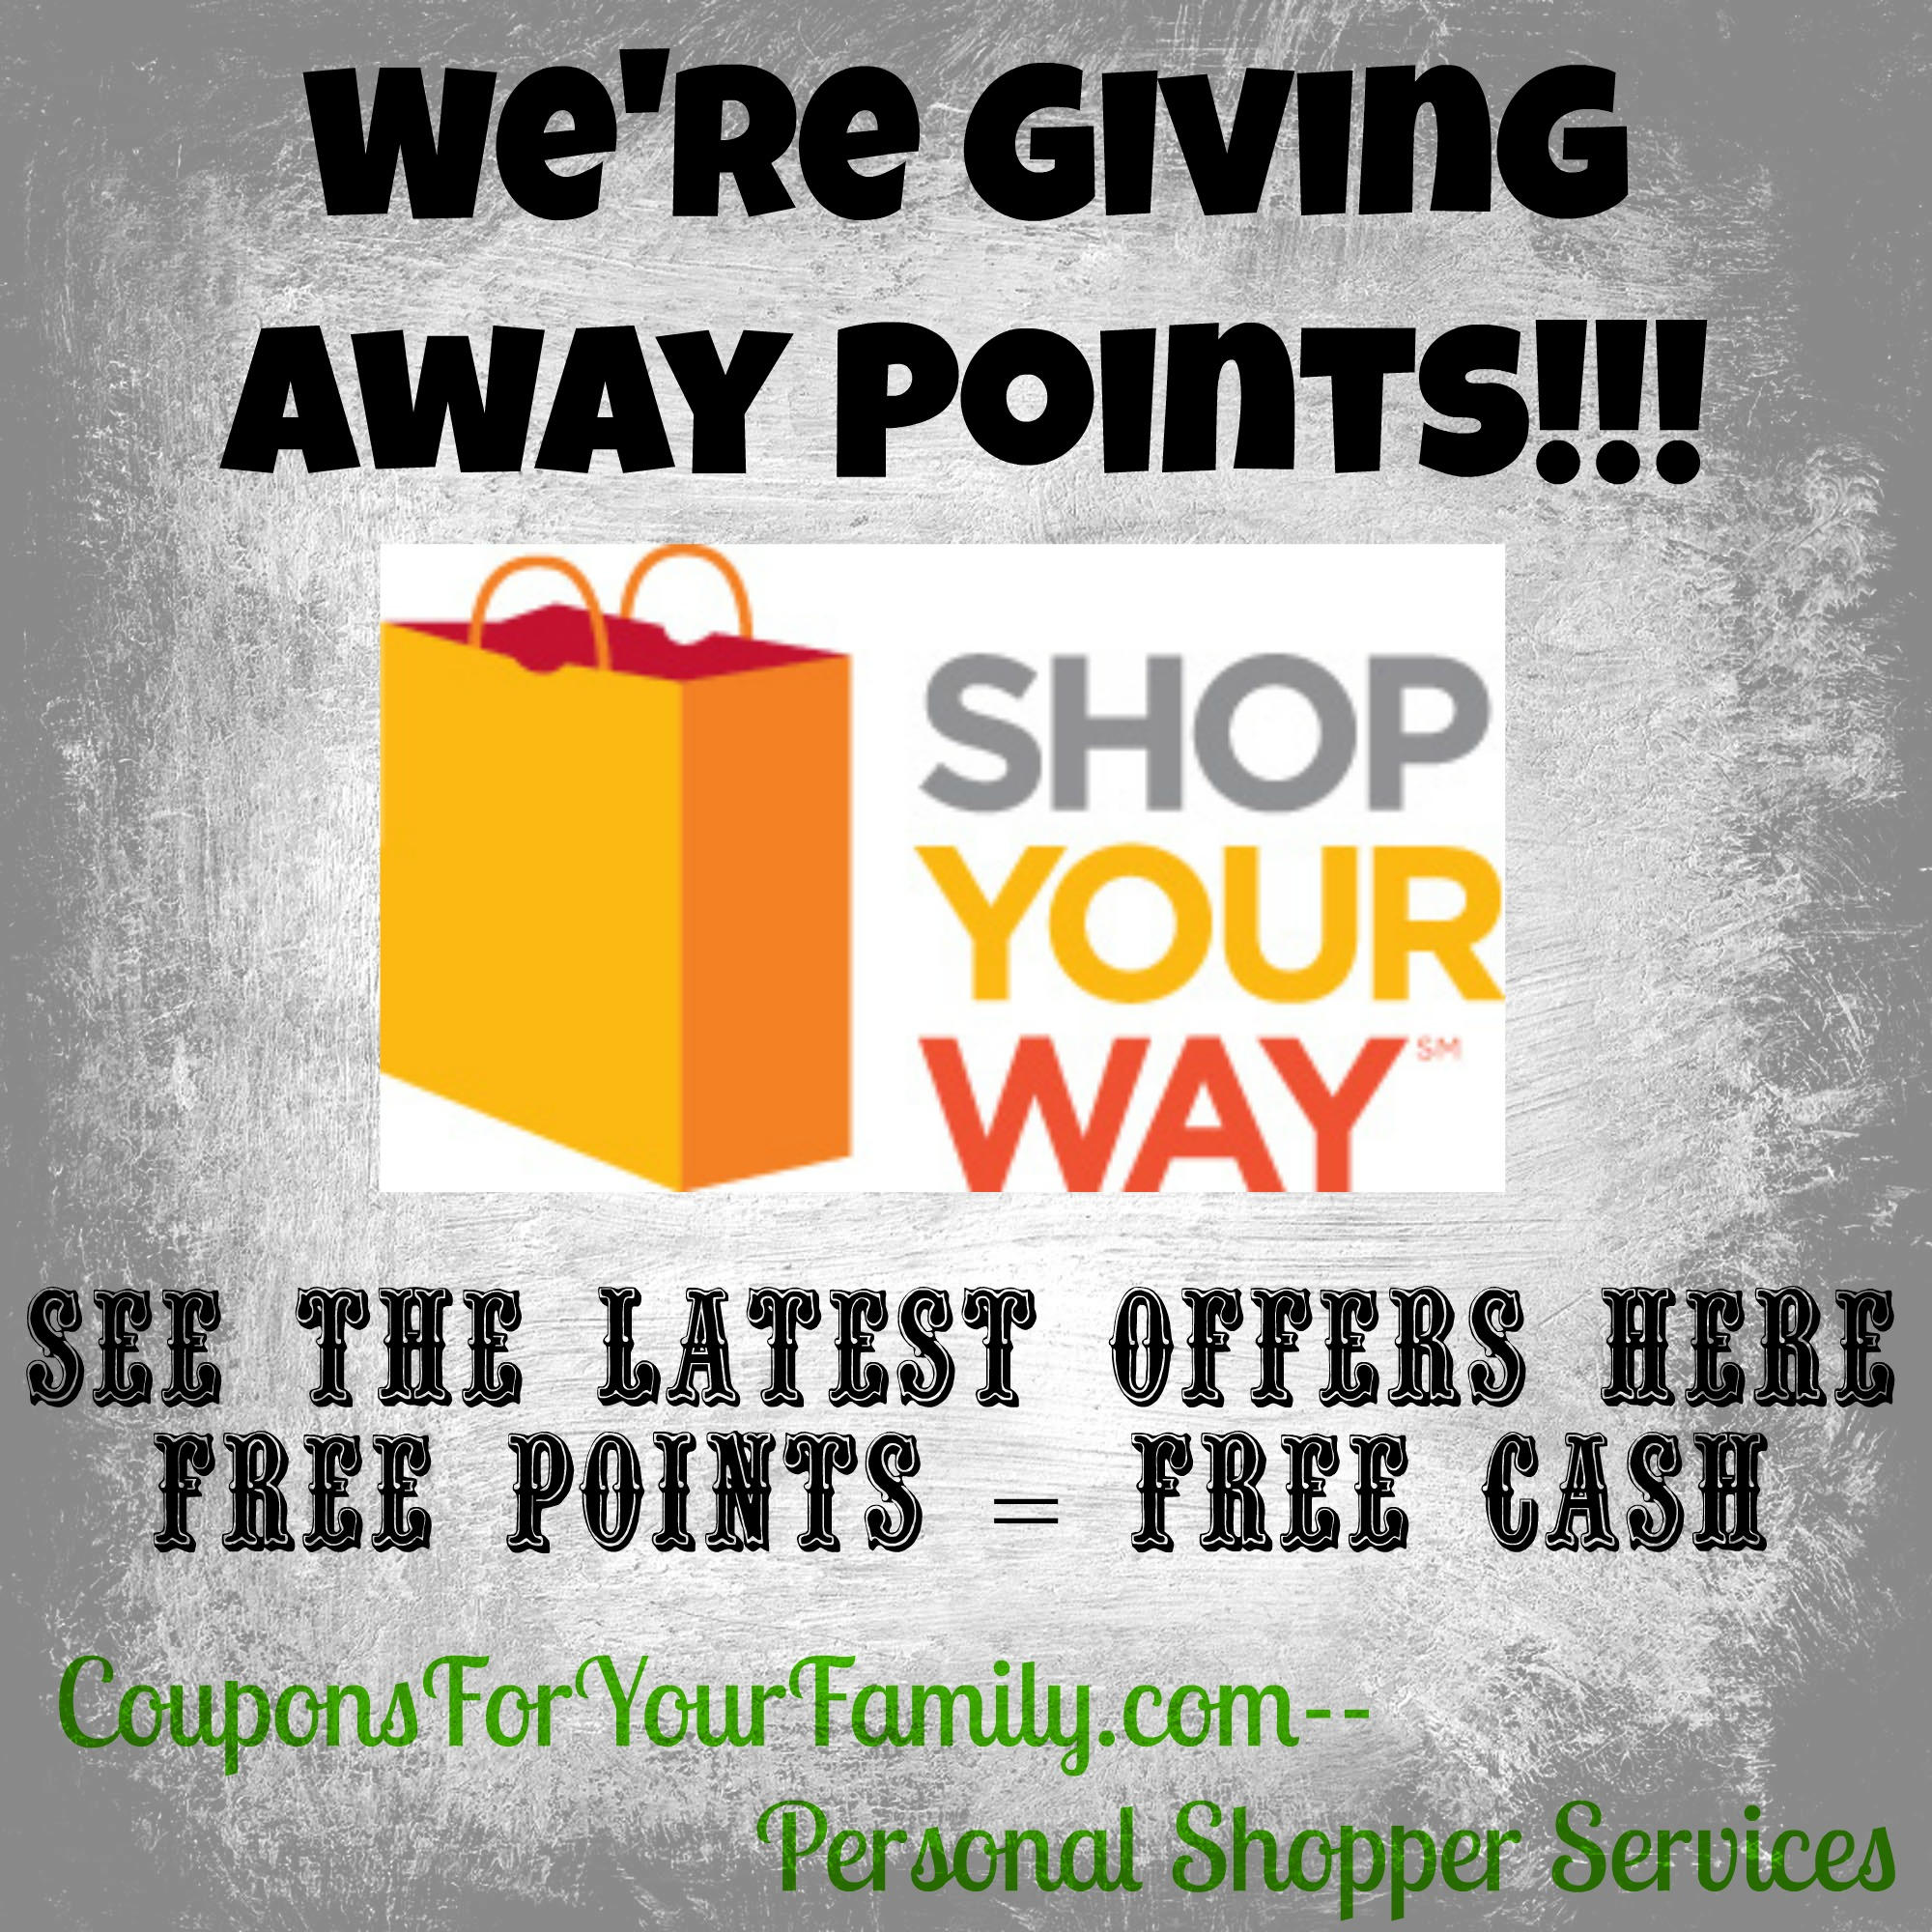 Shop your way coupon code